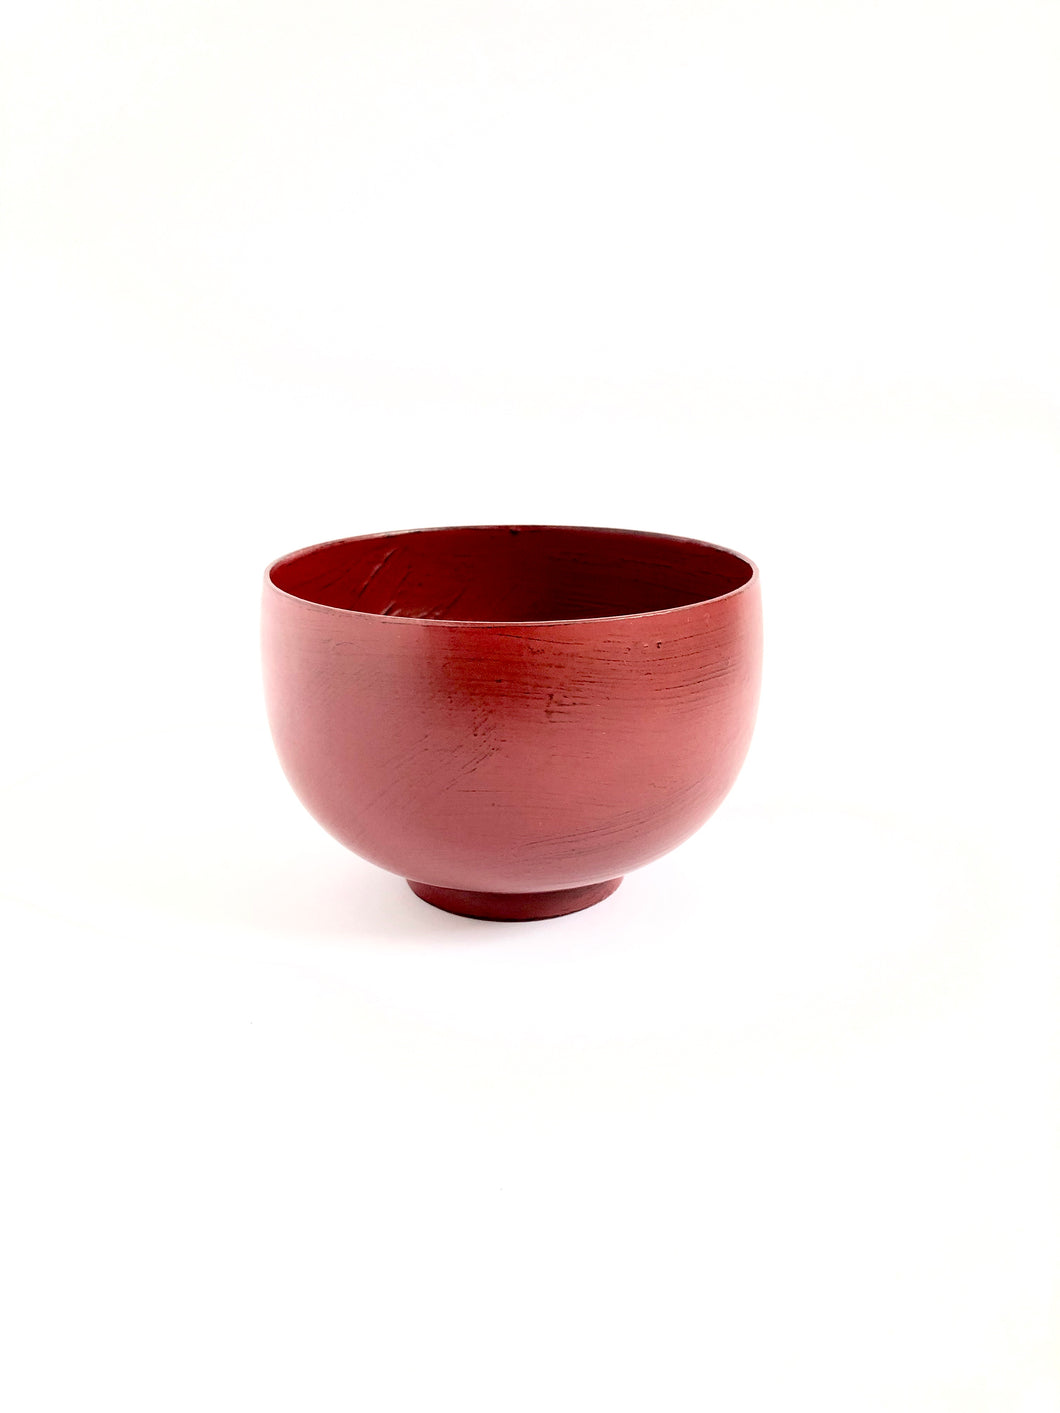 Japanese Lacquered Rounded Miso Soup Bowl - 漆塗りまり汁椀